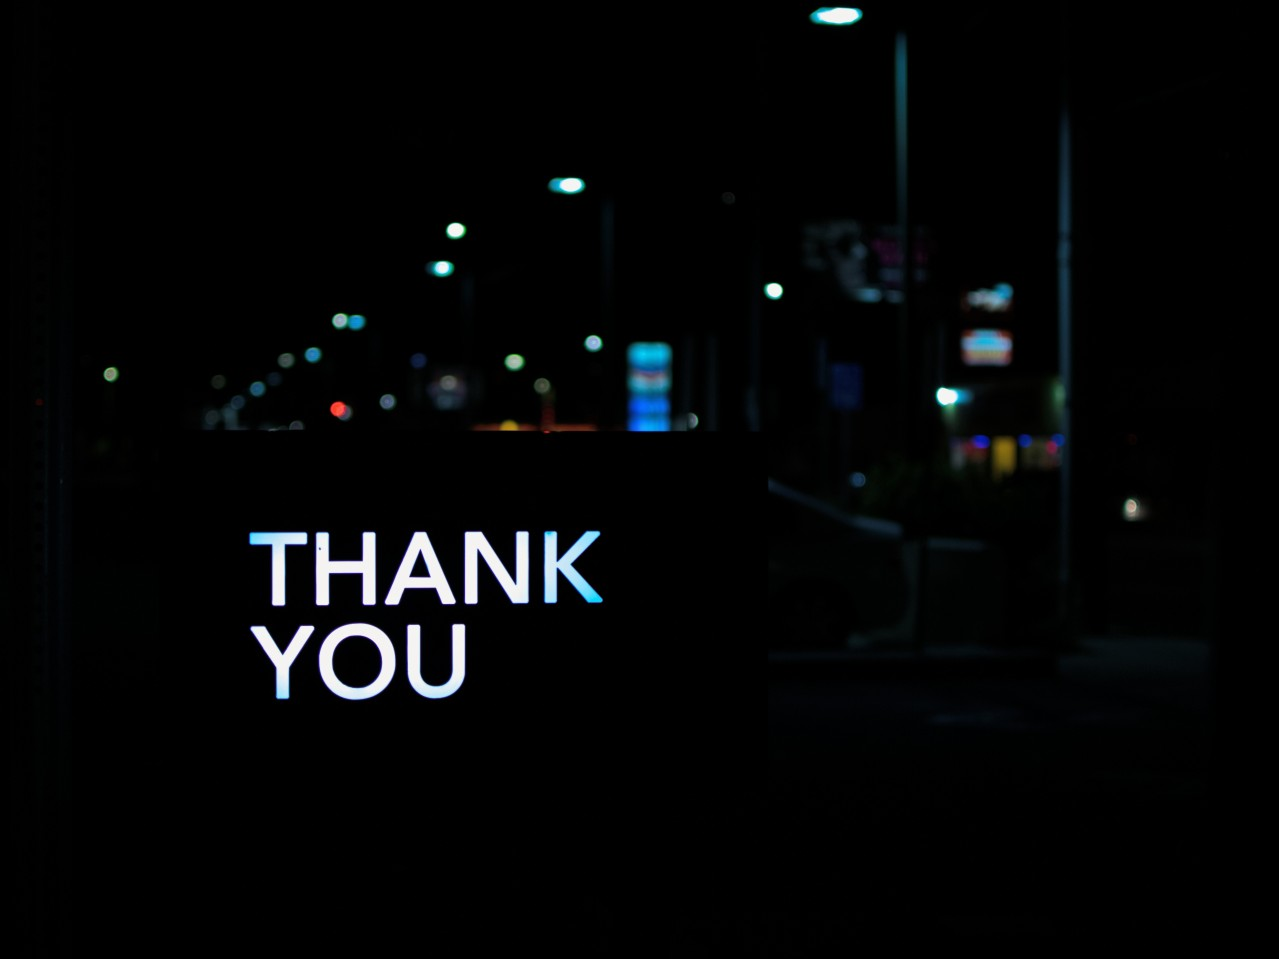 thank you written against dark city background